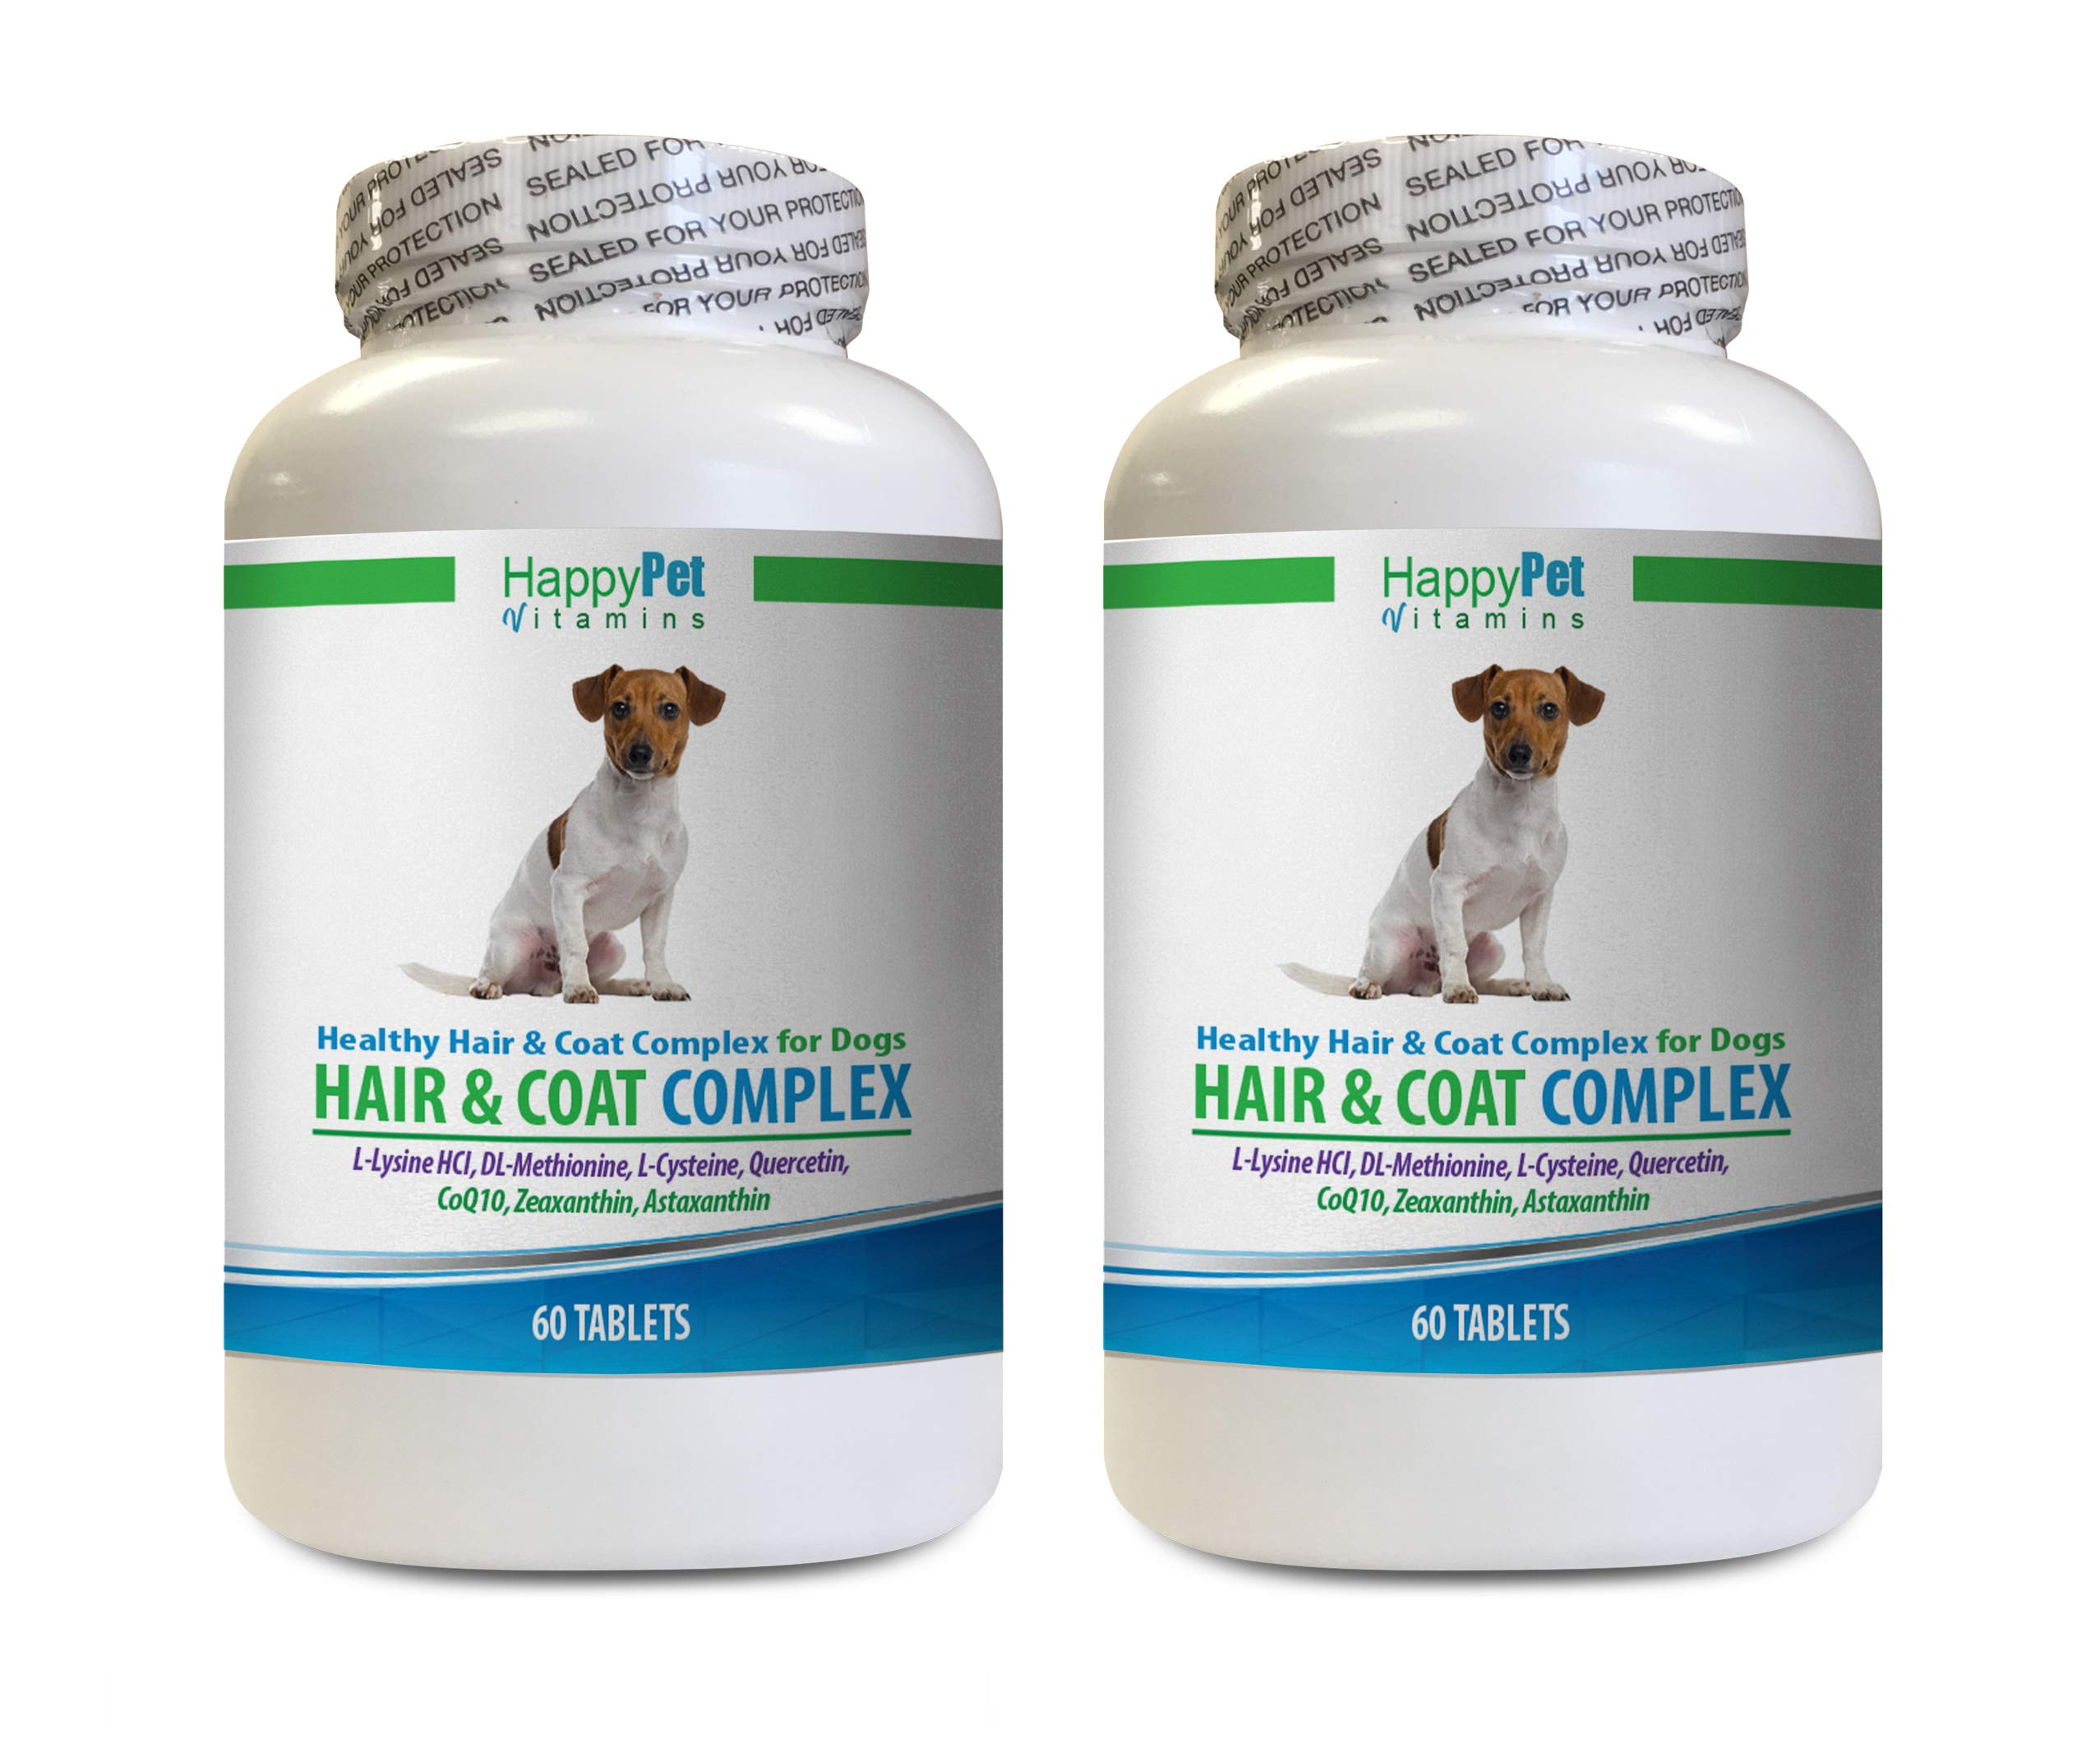 HAPPY PET VITAMINS LLC Dog Hair and Skin Supplements - Dog Hair and Coat Health Complex - Healthy Skin and Nails - Itch Relief - Powerful - Vitamin e for Dogs Skin - 120 Treats (2 Bottles) by HAPPY PET VITAMINS LLC